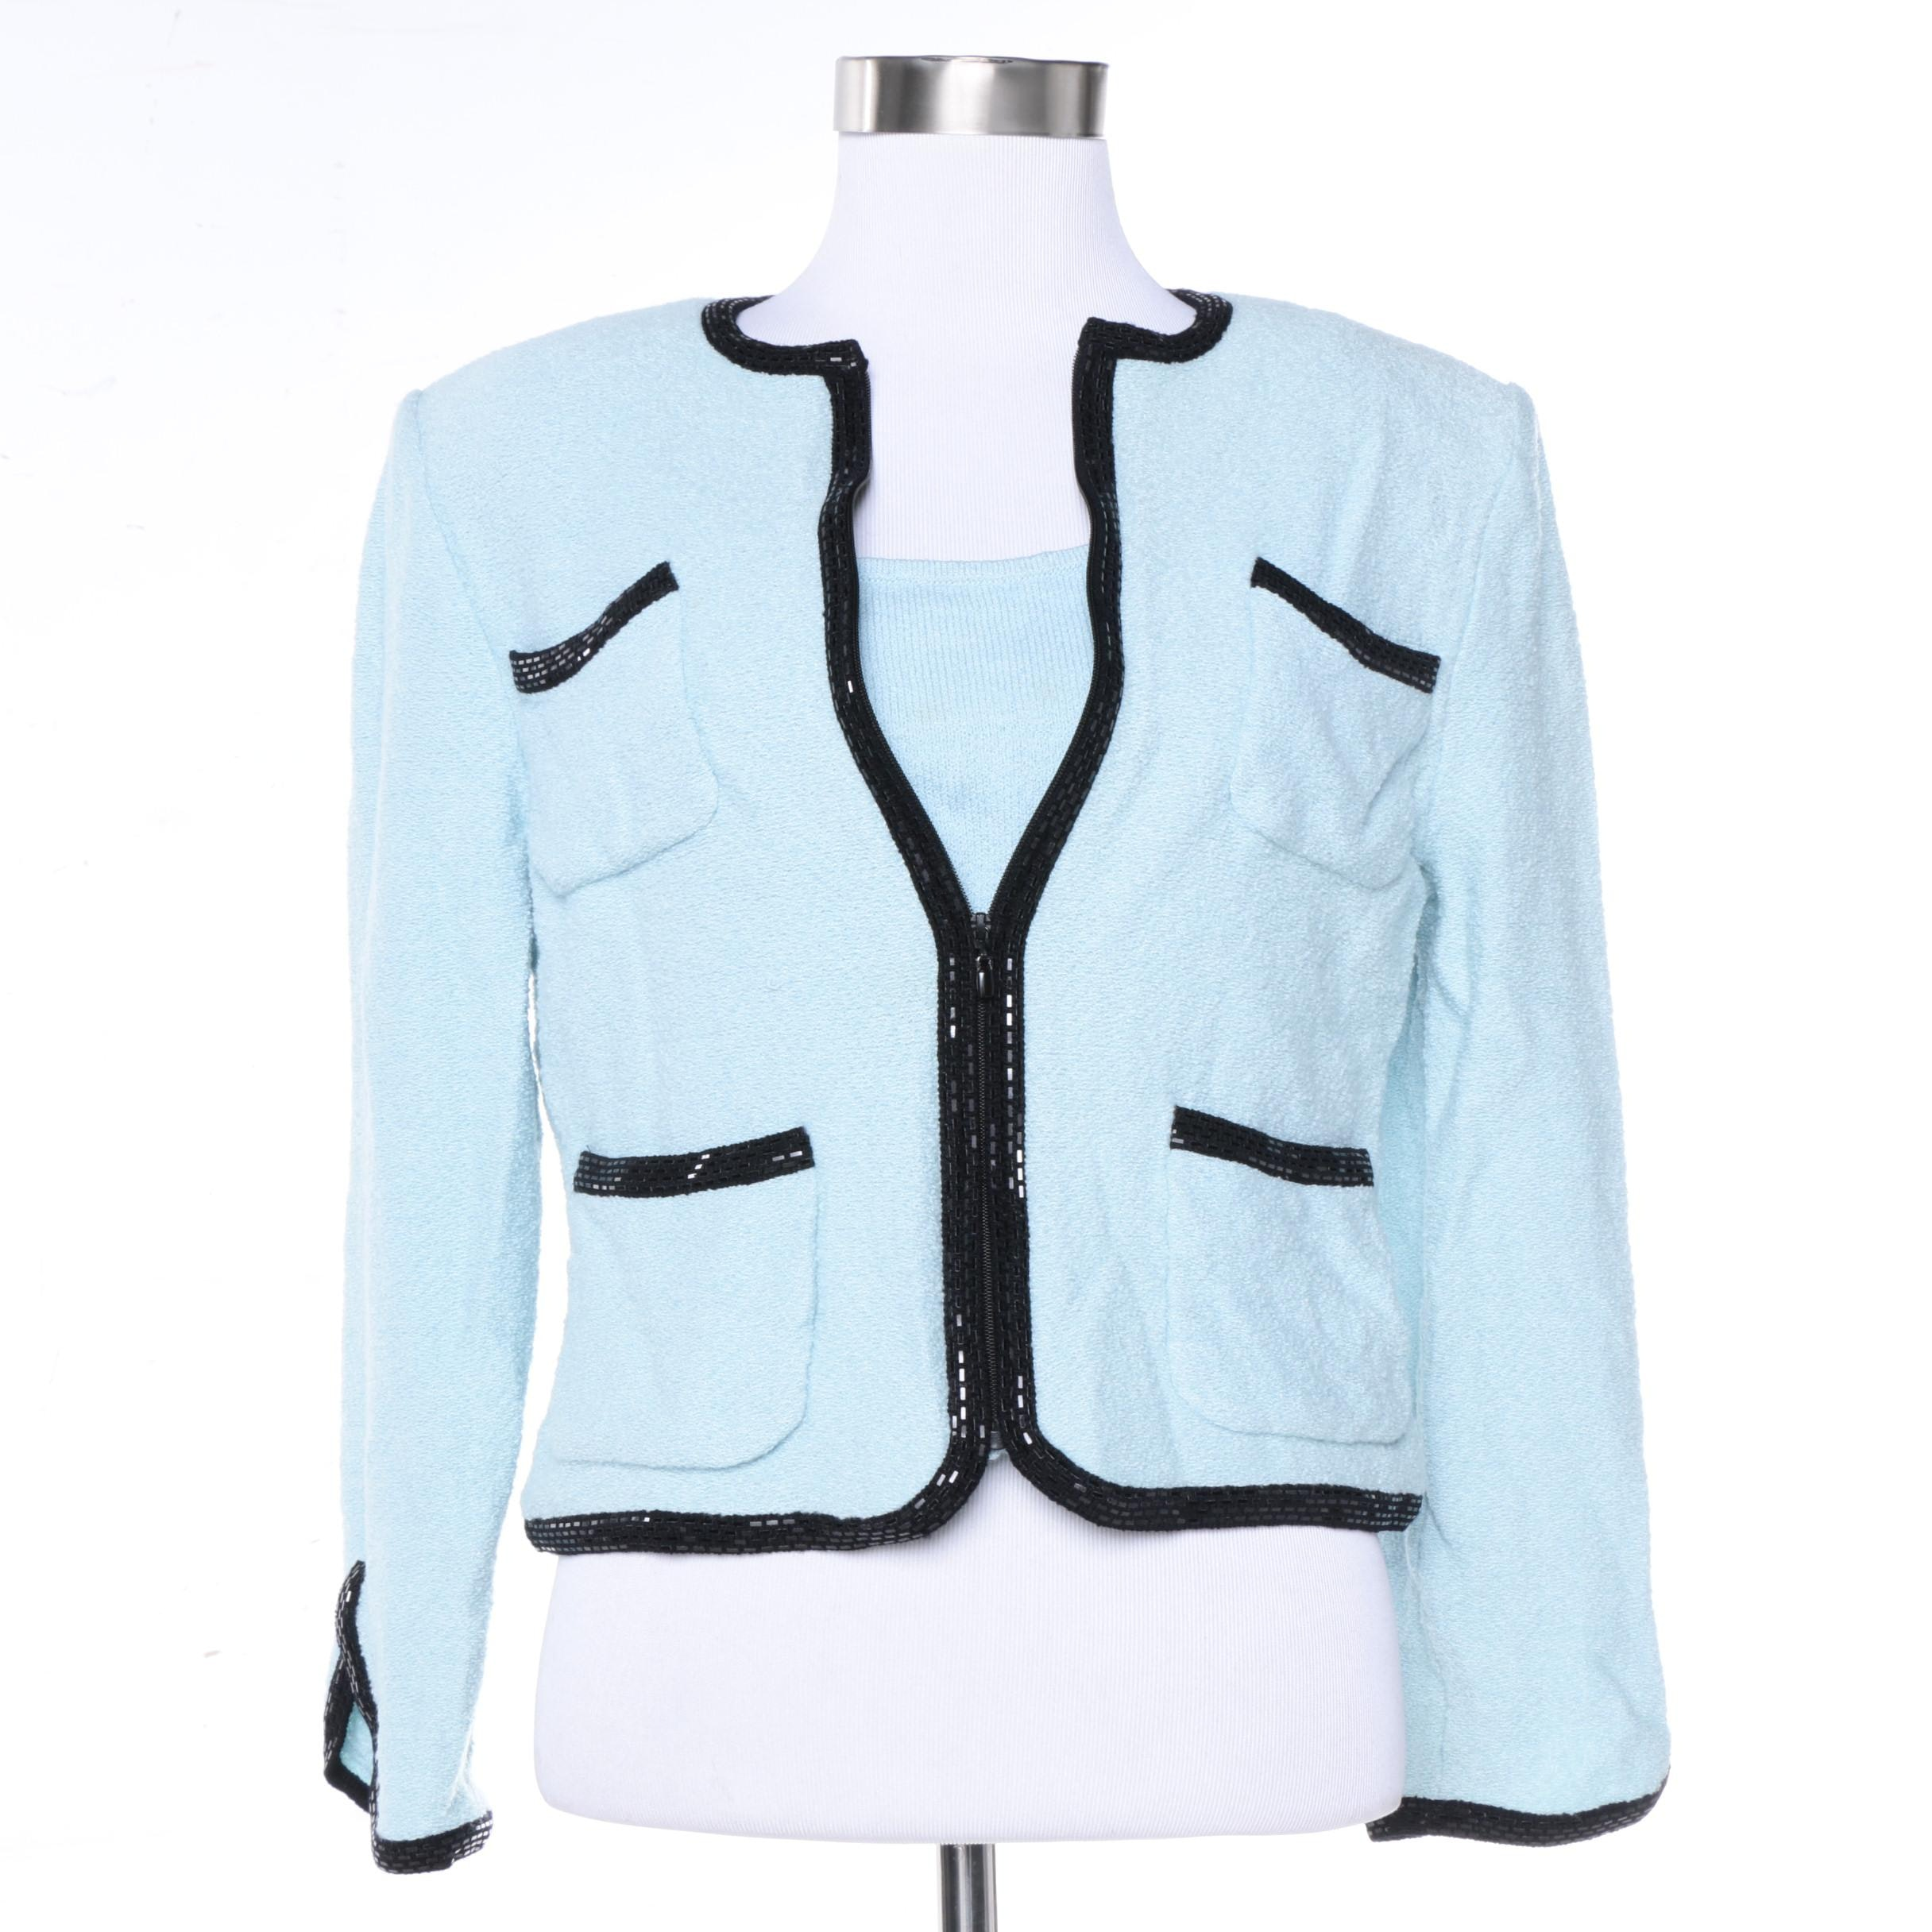 Women's St. John Collection Blue Knit Suit Jacket and St. John Knit Tank Top